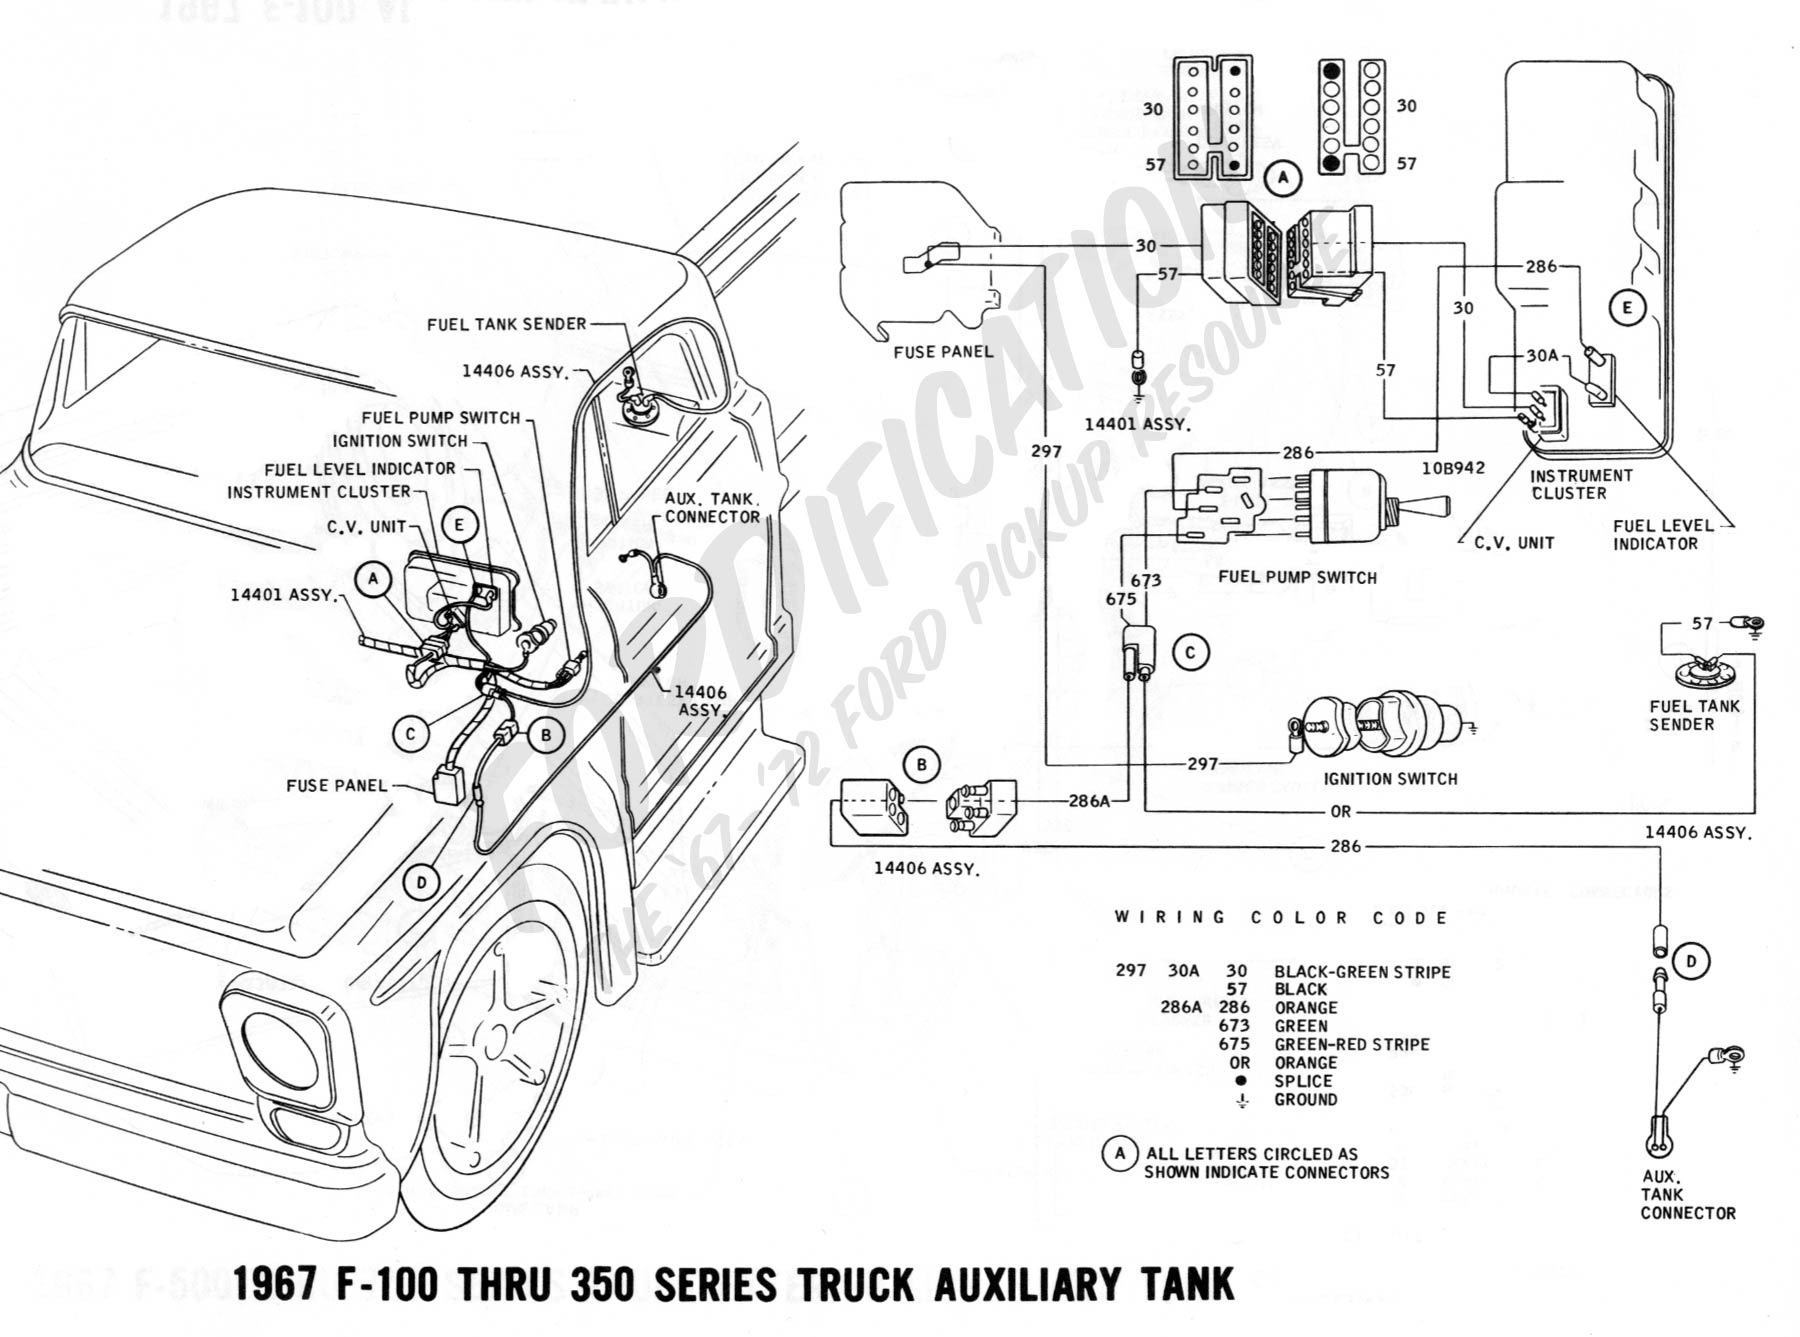 1965 Ford Mustang Wiper Motor Wiring Diagram Simple Guide About Gm Images Gallery Truck Technical Drawings And Schematics Section H